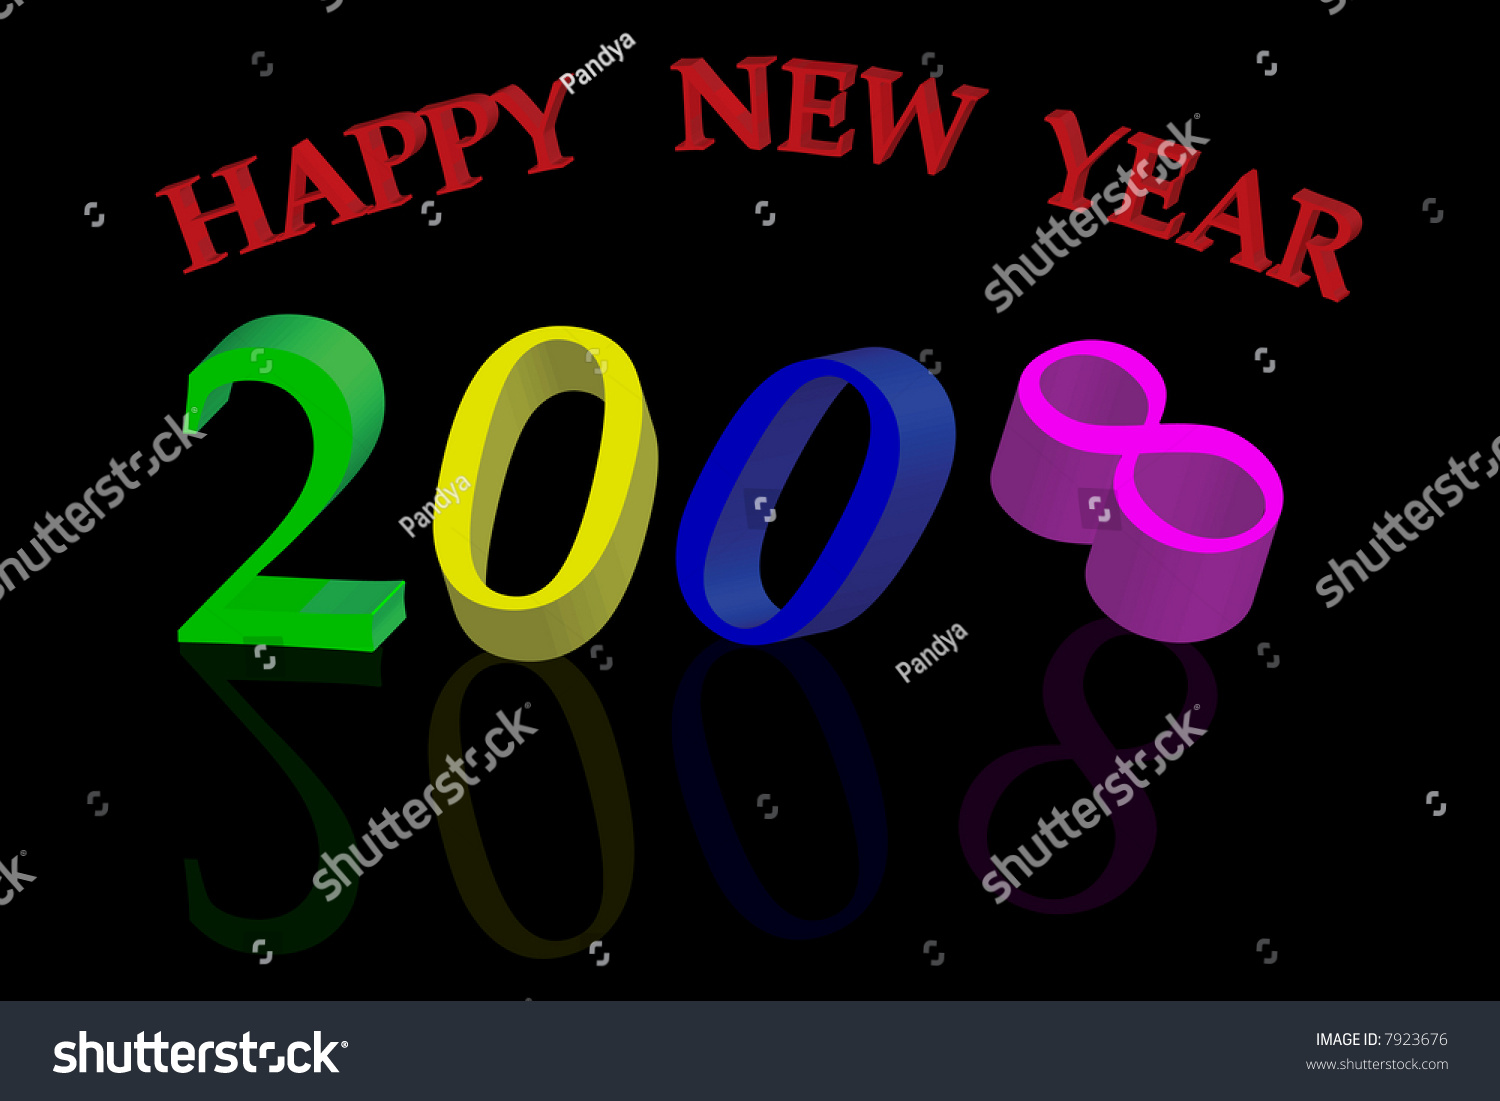 https://image.shutterstock.com/z/stock-vector-happy-new-year-7923676.jpg